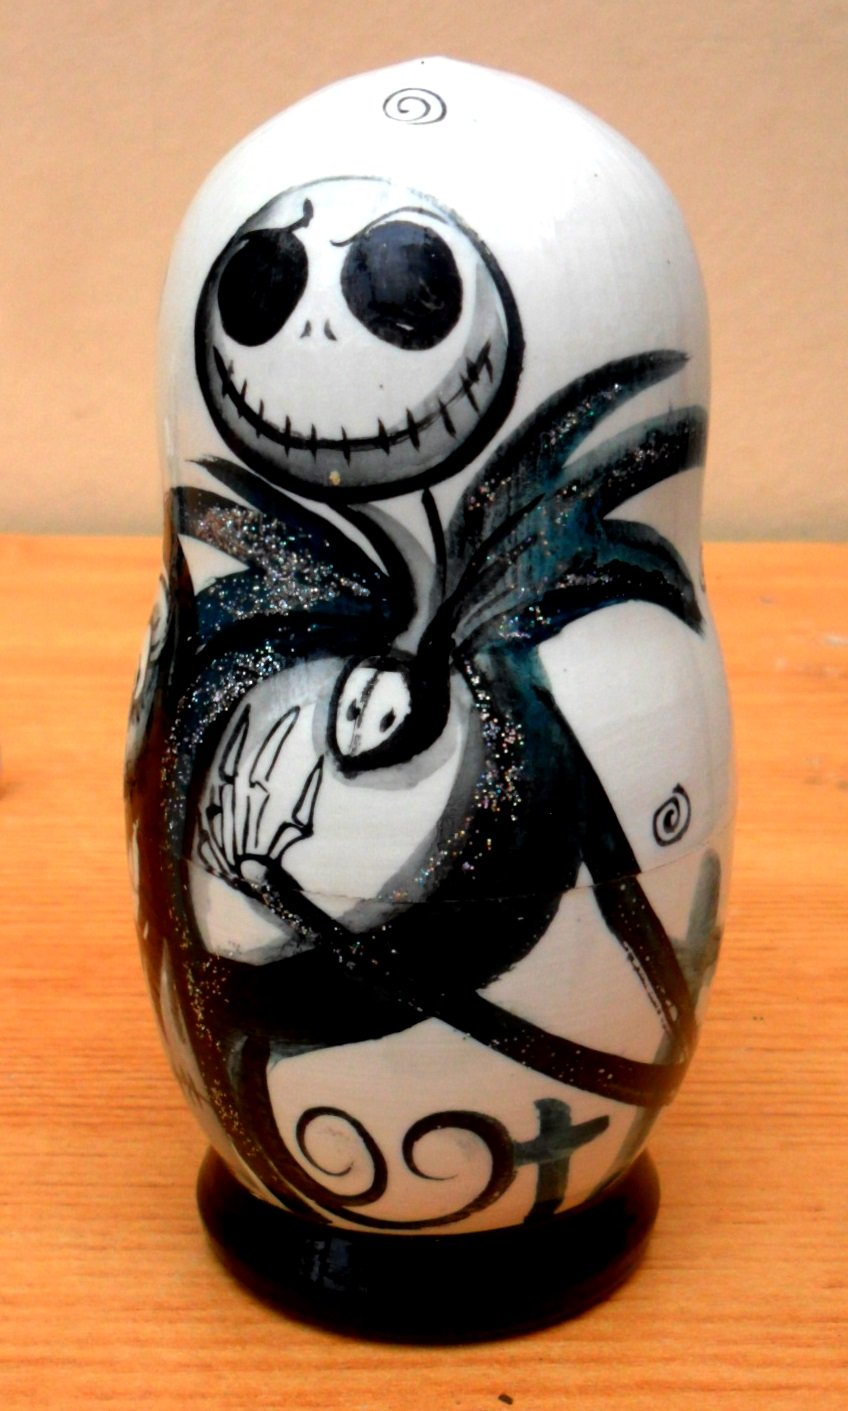 Jack skellington bathroom set - Amazon Com Russian Nesting Doll The Nightmare Before Christmas Jack Skellington Set Of 5 Piece Hand Painted In Russia Toys Games